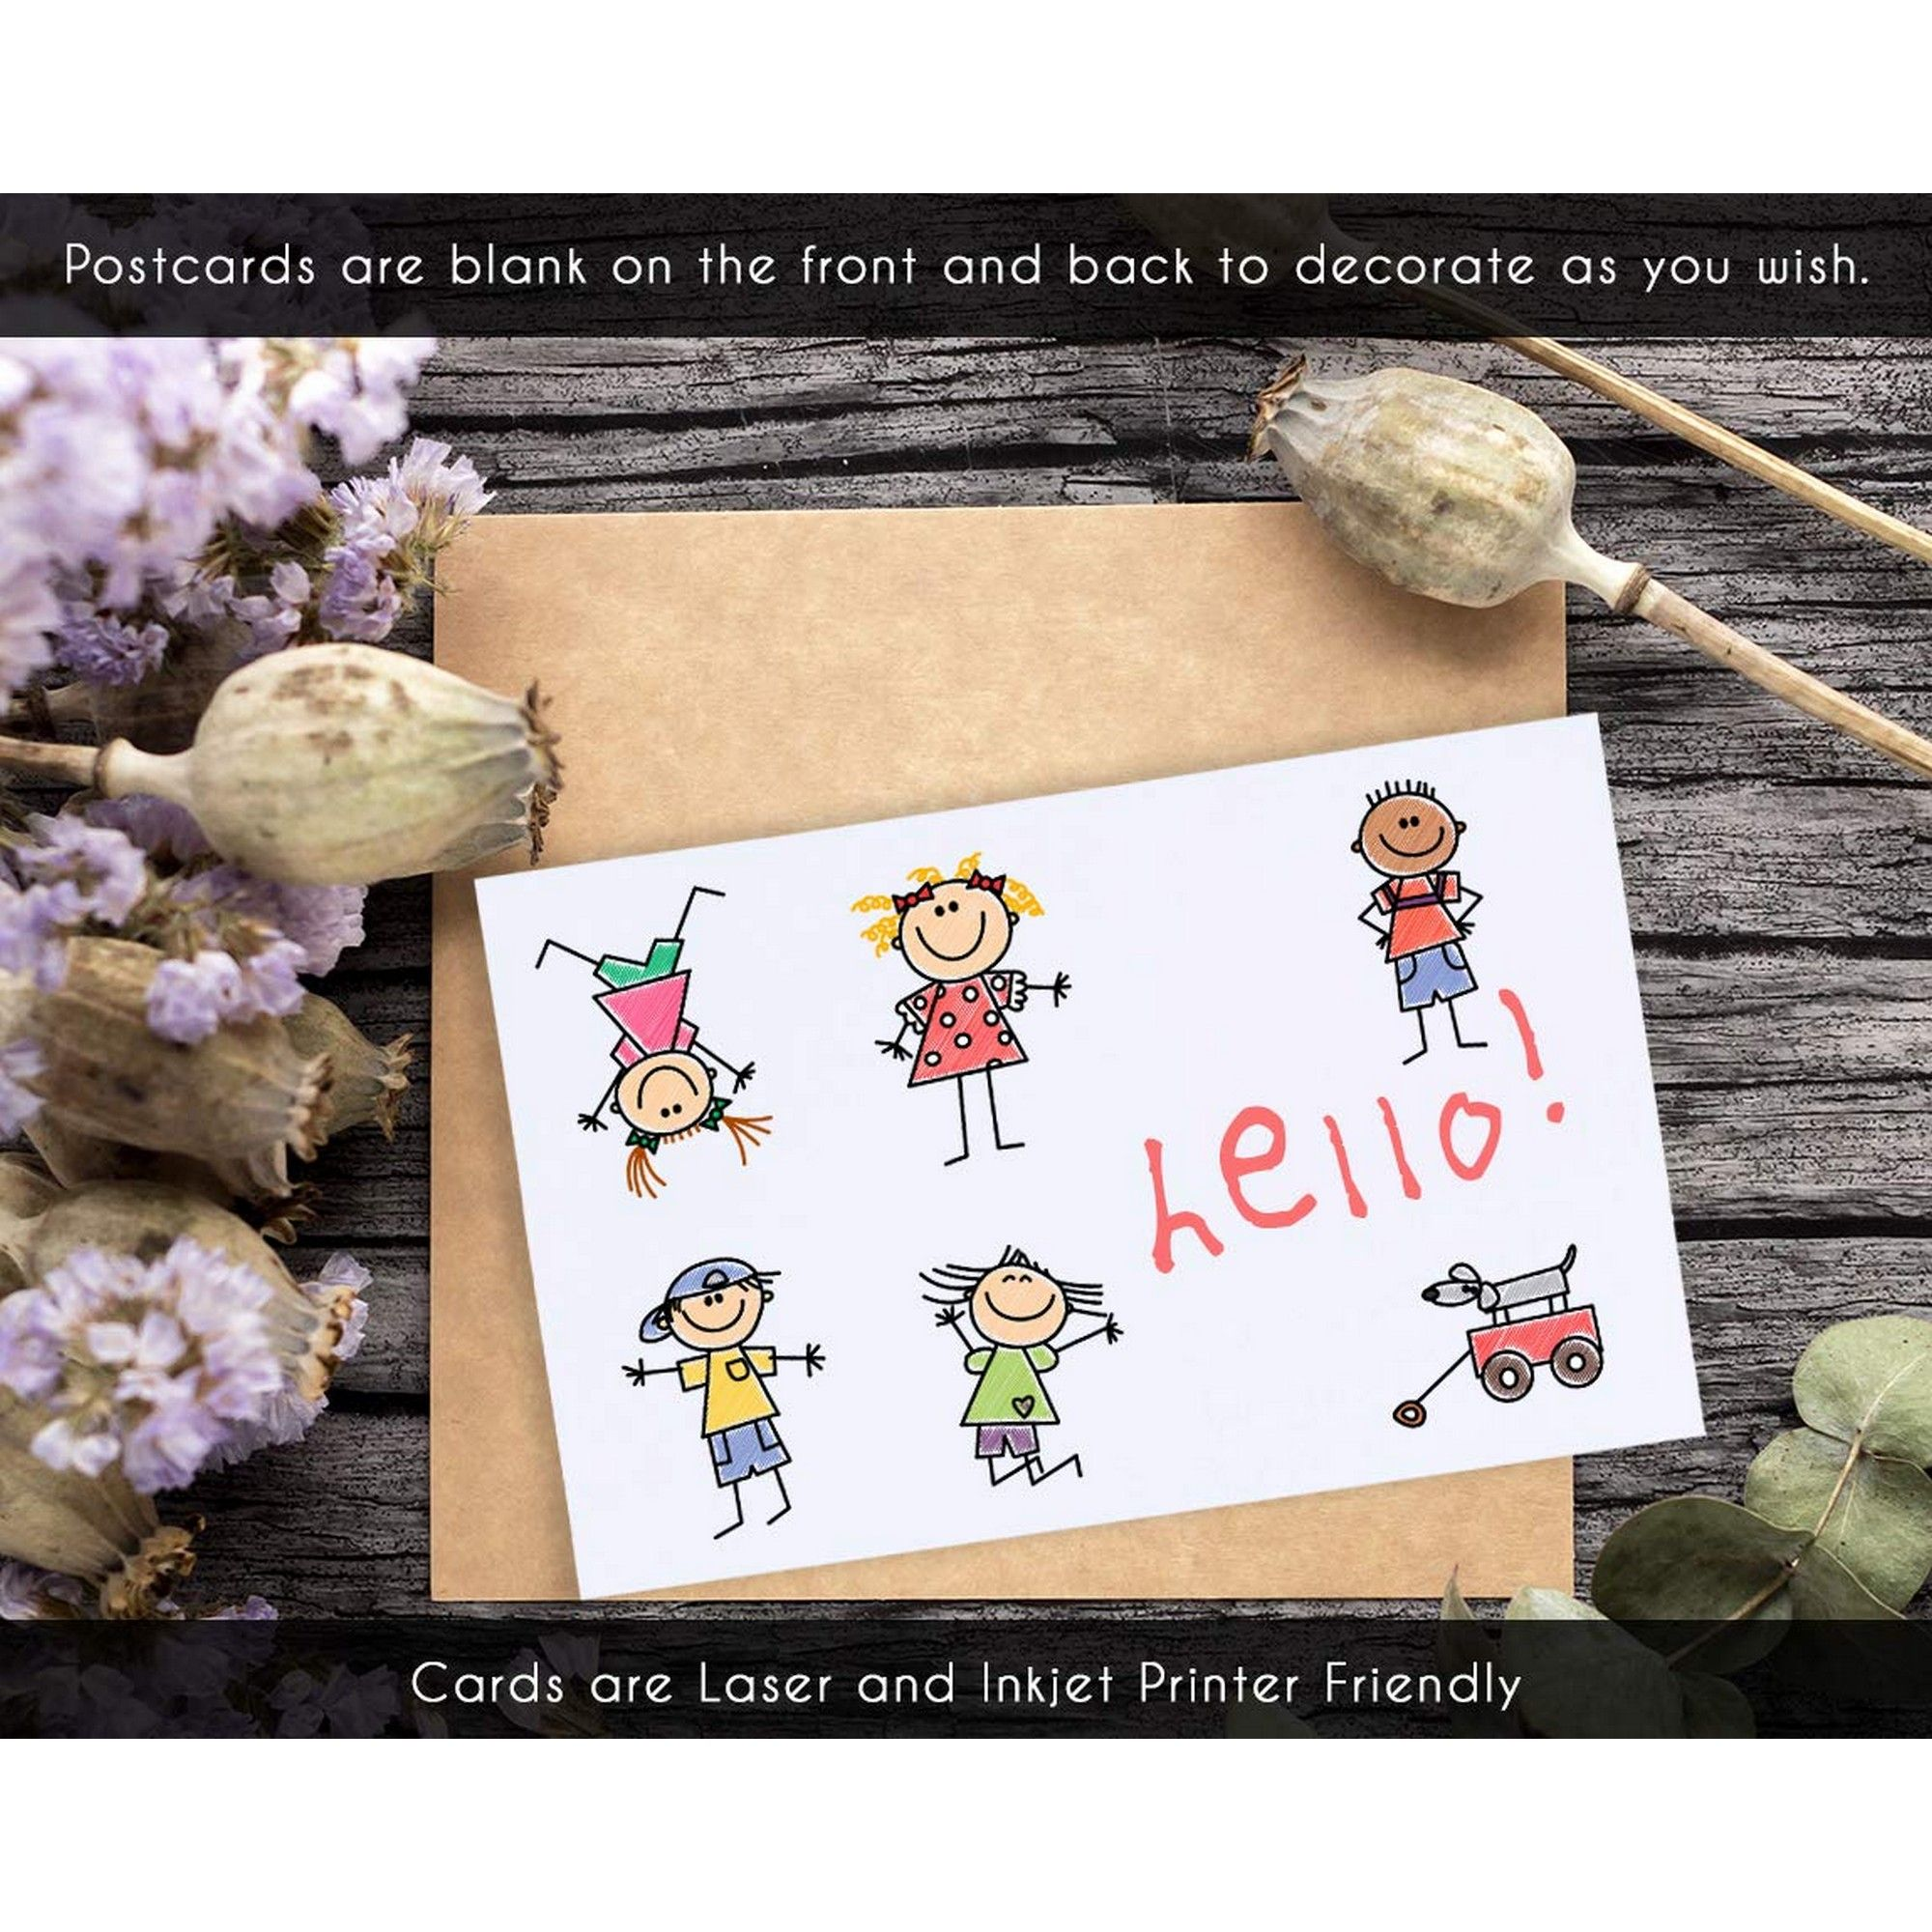 Laser and Inkjet Printer Friendly Perforated White 2 Per Page 100-Sheet 200 Cards Blank Note Cards Blank Jumbo Postcards 8.5 x 5.5 Inches Per Postcard